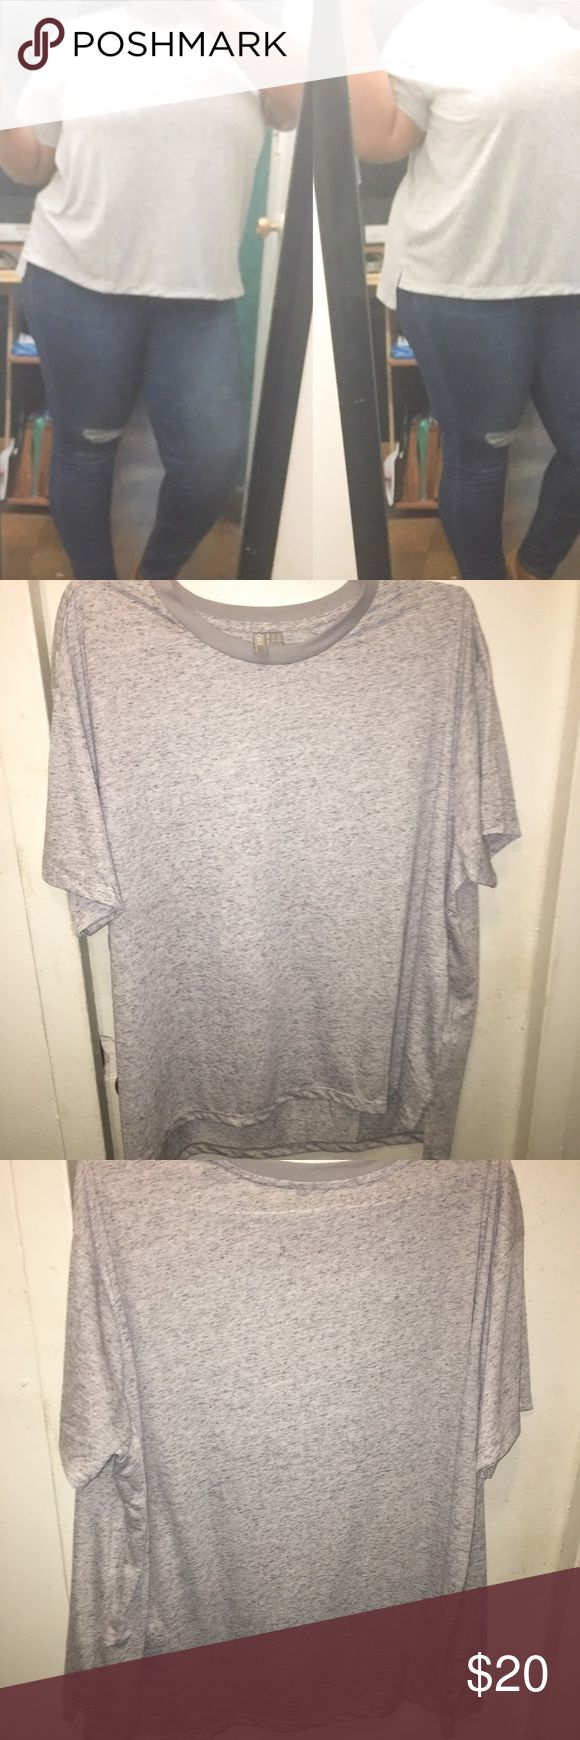 Cute Split Hem Top ✅BUNDLE DISCOUNT🚫NO LOWEST🚫NO TRADES.  Retails $35. Super cute, wear with jeans or Joggers. Runs true to size, color is a light gray.  Questions welcomed. ASOS Curve Tops Blouses